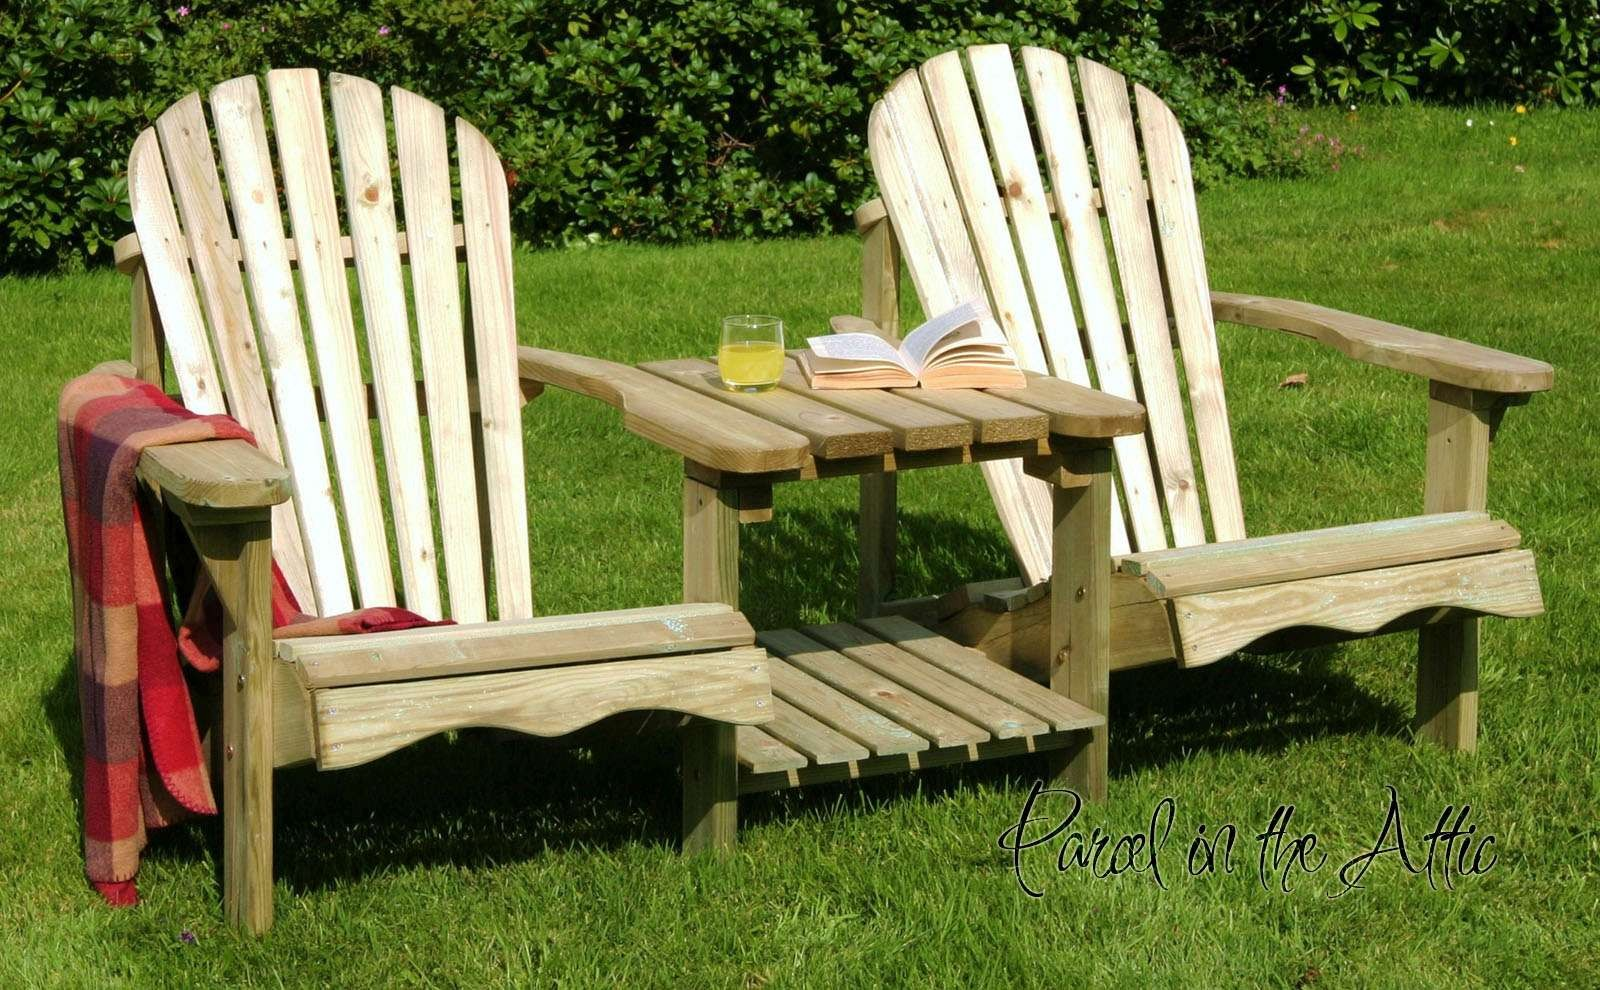 Solid Wood Adirondack Double Chair   Parcel In The Attic   Lifestyle, Home,  Living